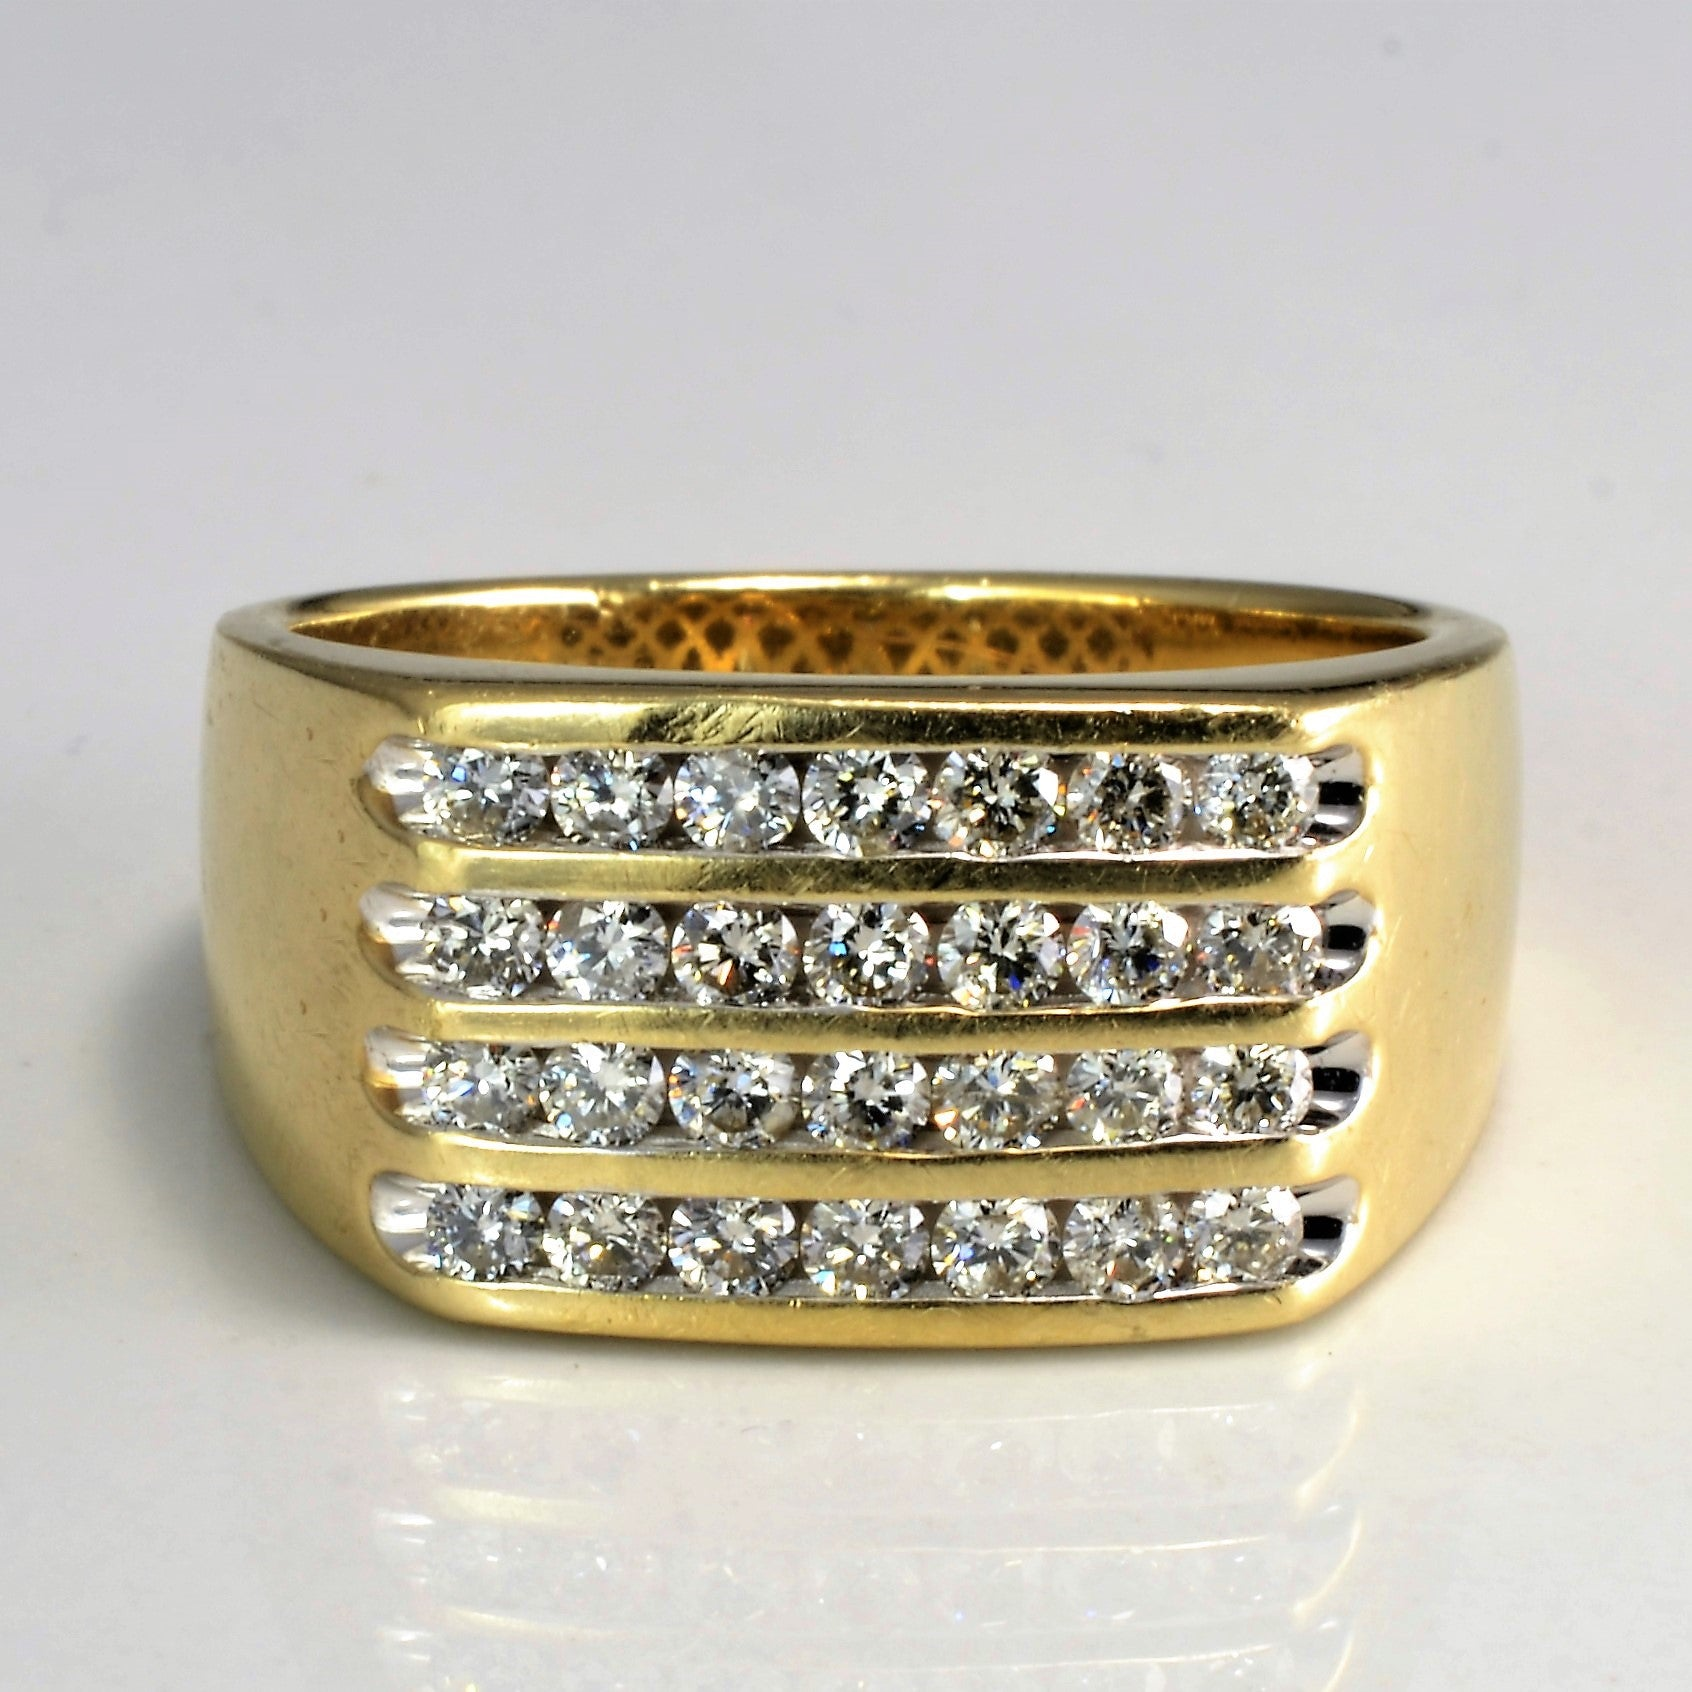 Multi- Row Channel Diamond Ring | 0.85 ctw, SZ 10.25 |